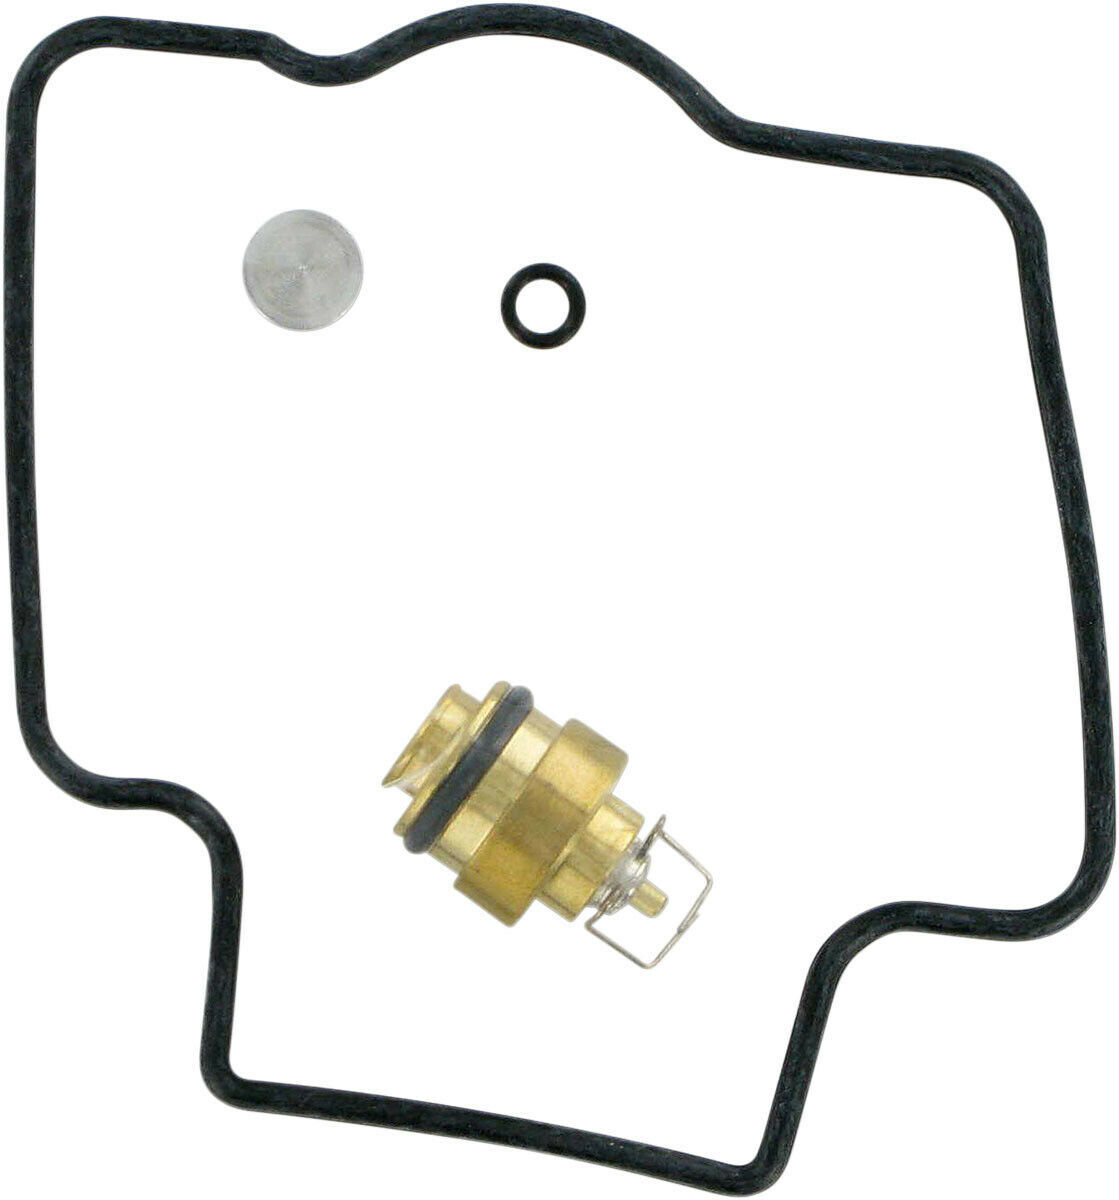 Kawasaki 1990-2003 Carburetor Repair Kit - K&L 18-9339